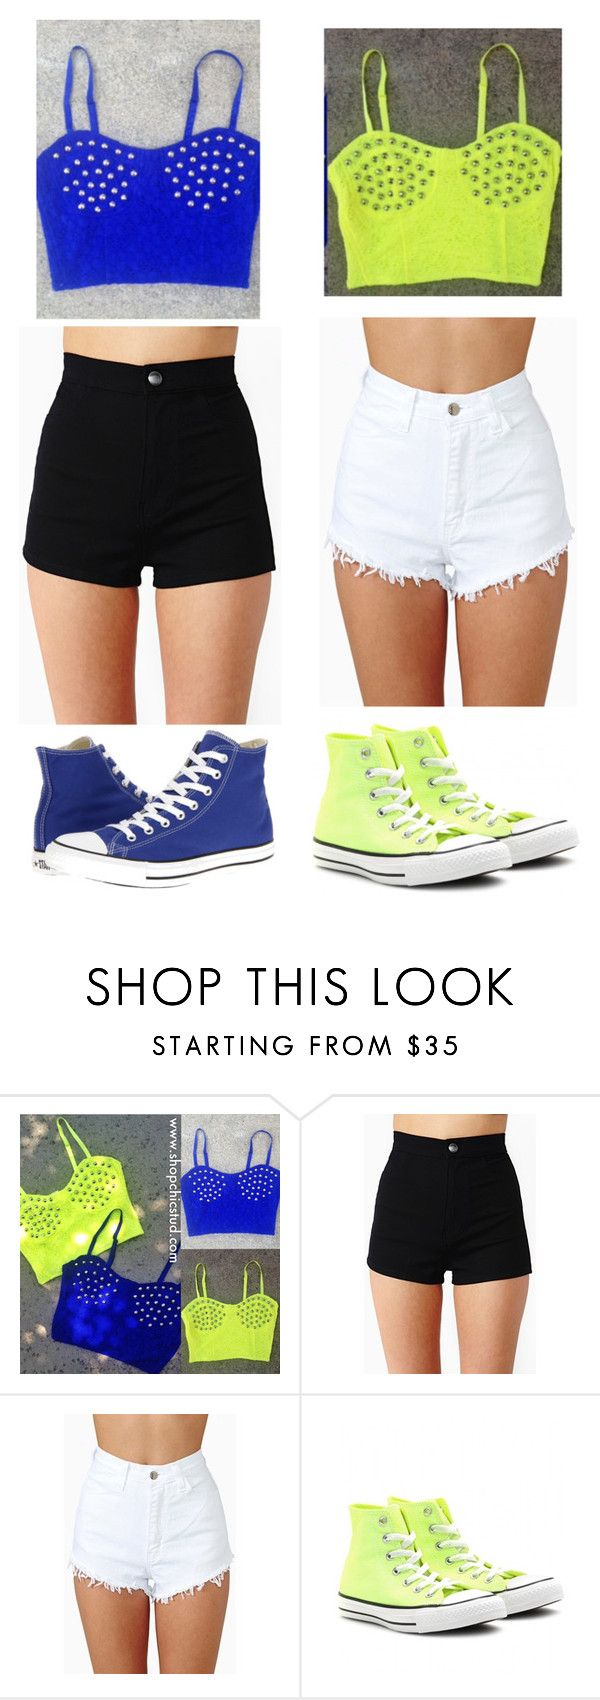 Best friends matching outfits ❤ by cristen-wyatt on Polyvore featuring Converse